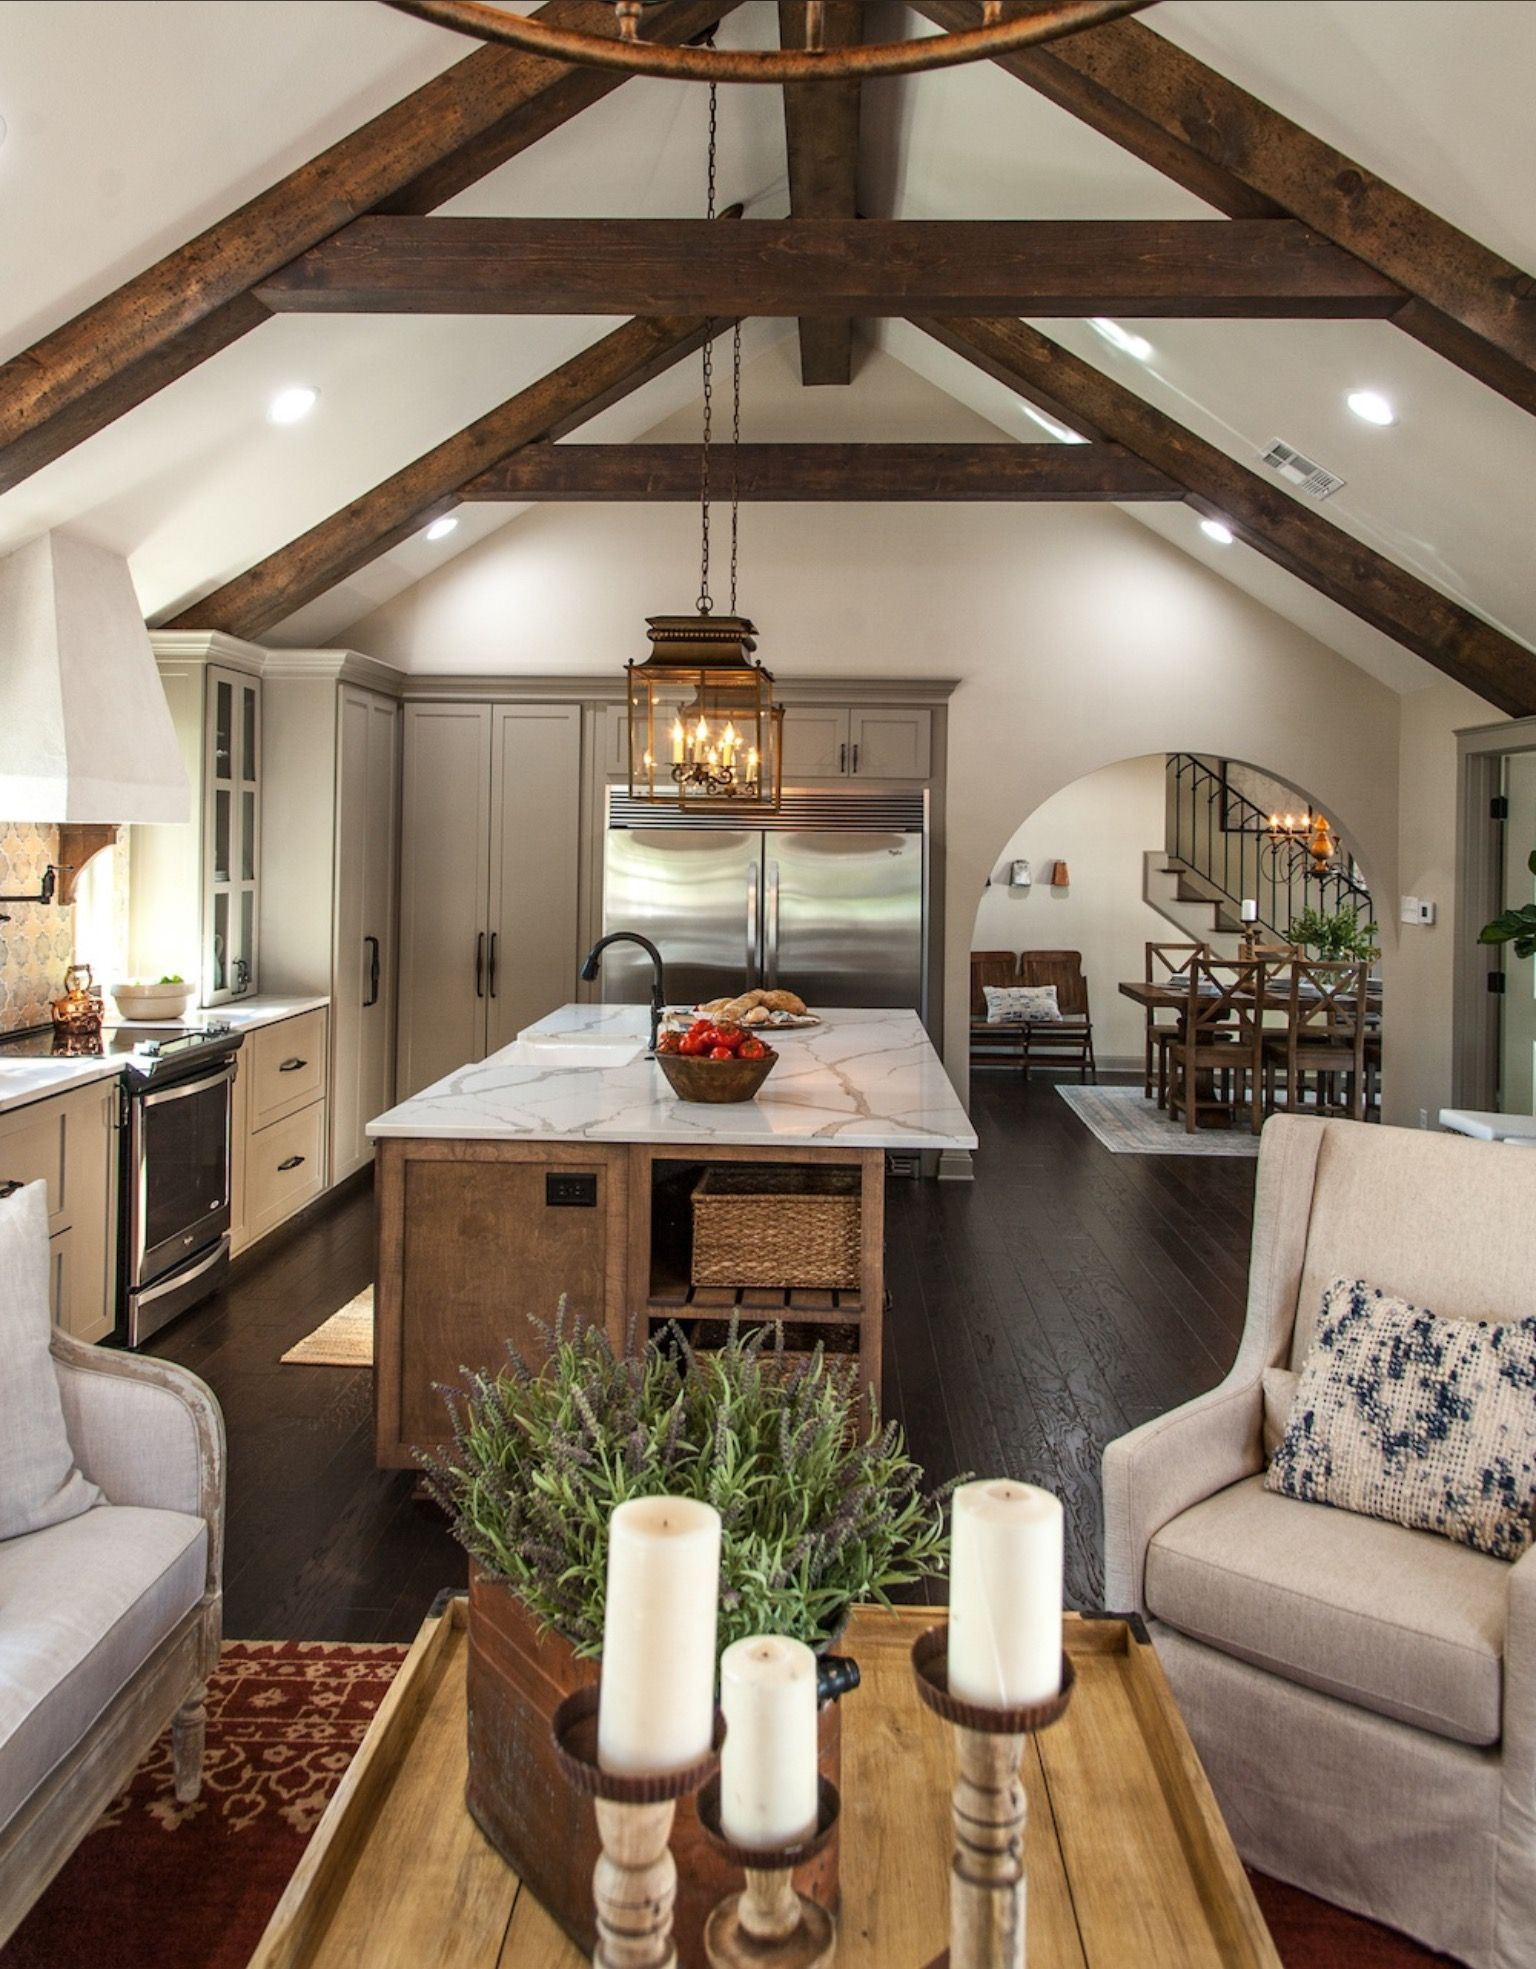 I could get behind some beams like these | Home | Pinterest ...